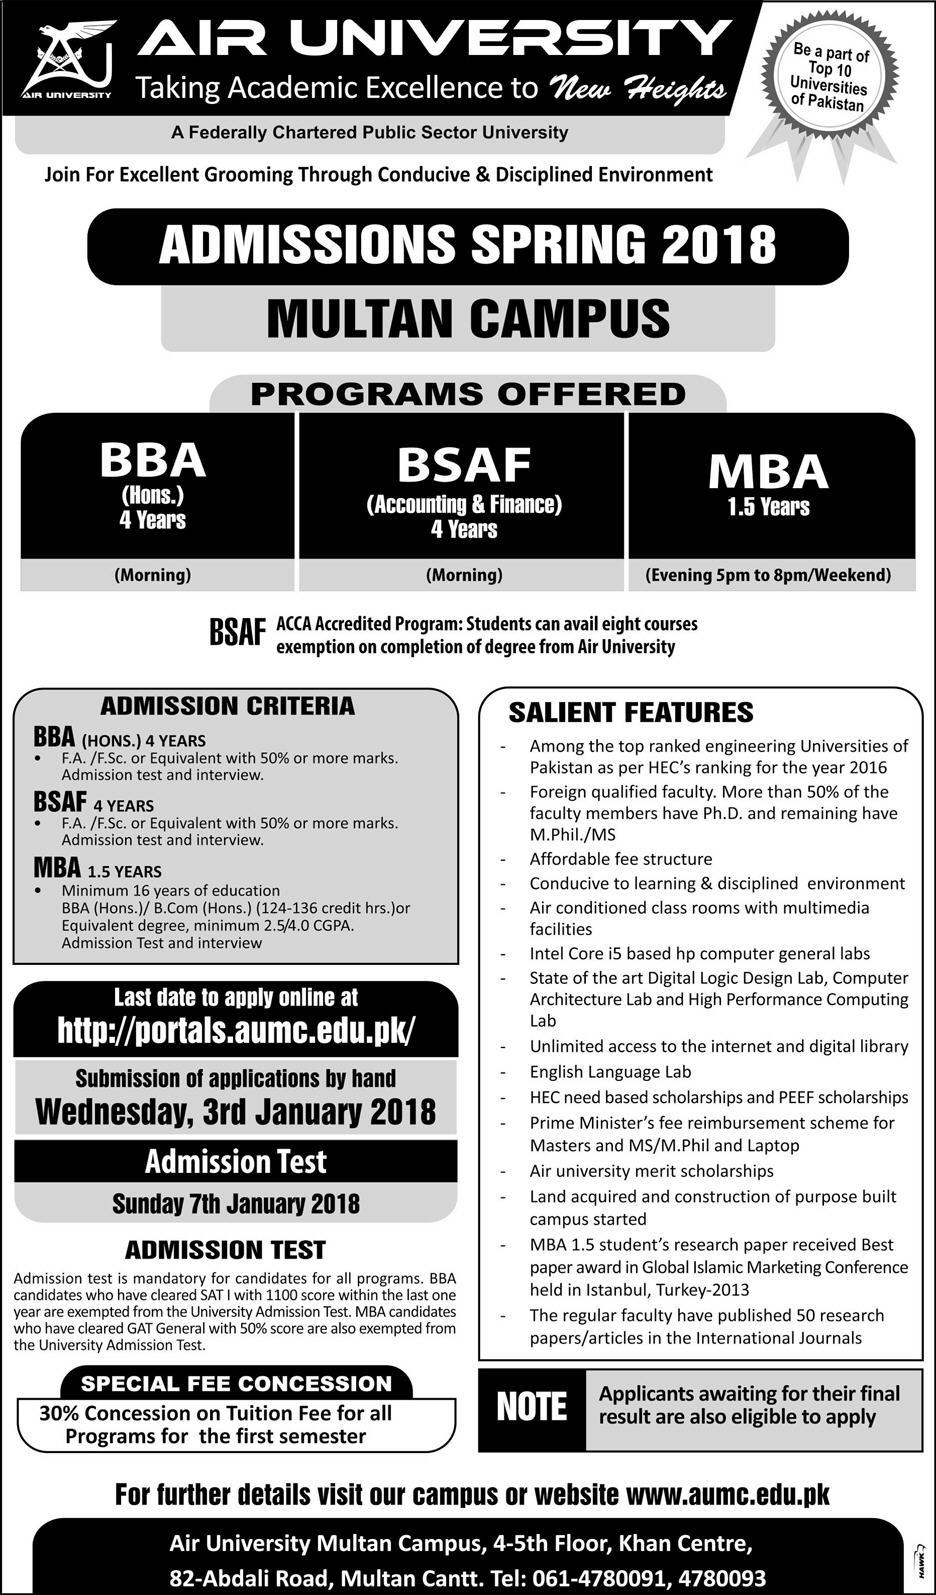 Air University Multan Campus AUMC Admissions 2018 Download Form, Last Date